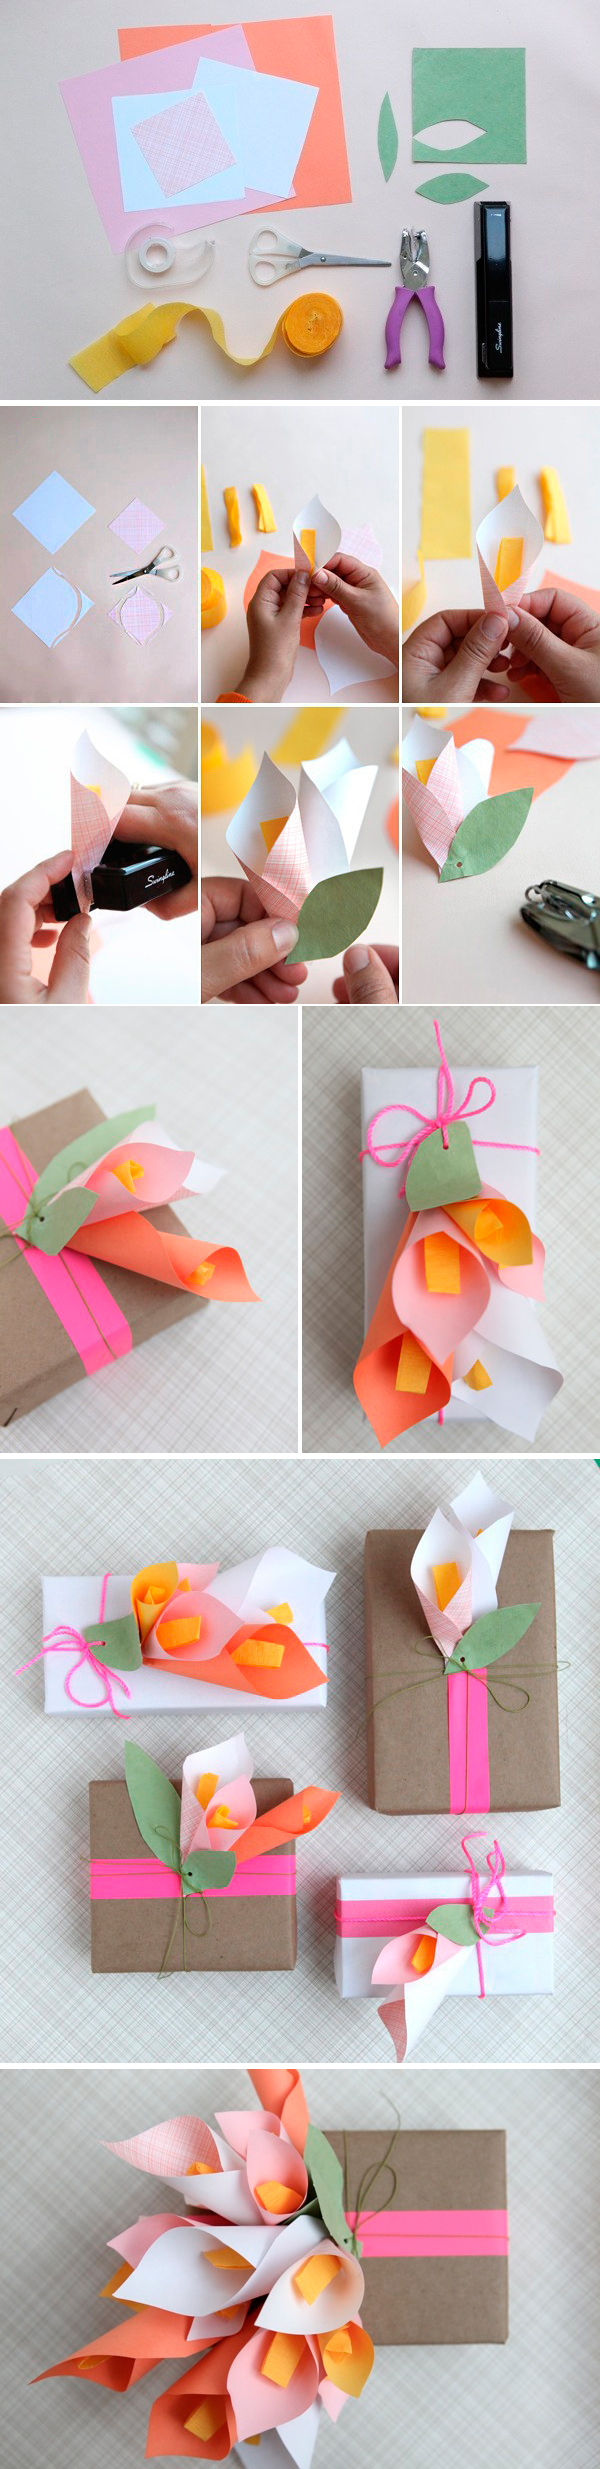 Papel Lily Just.